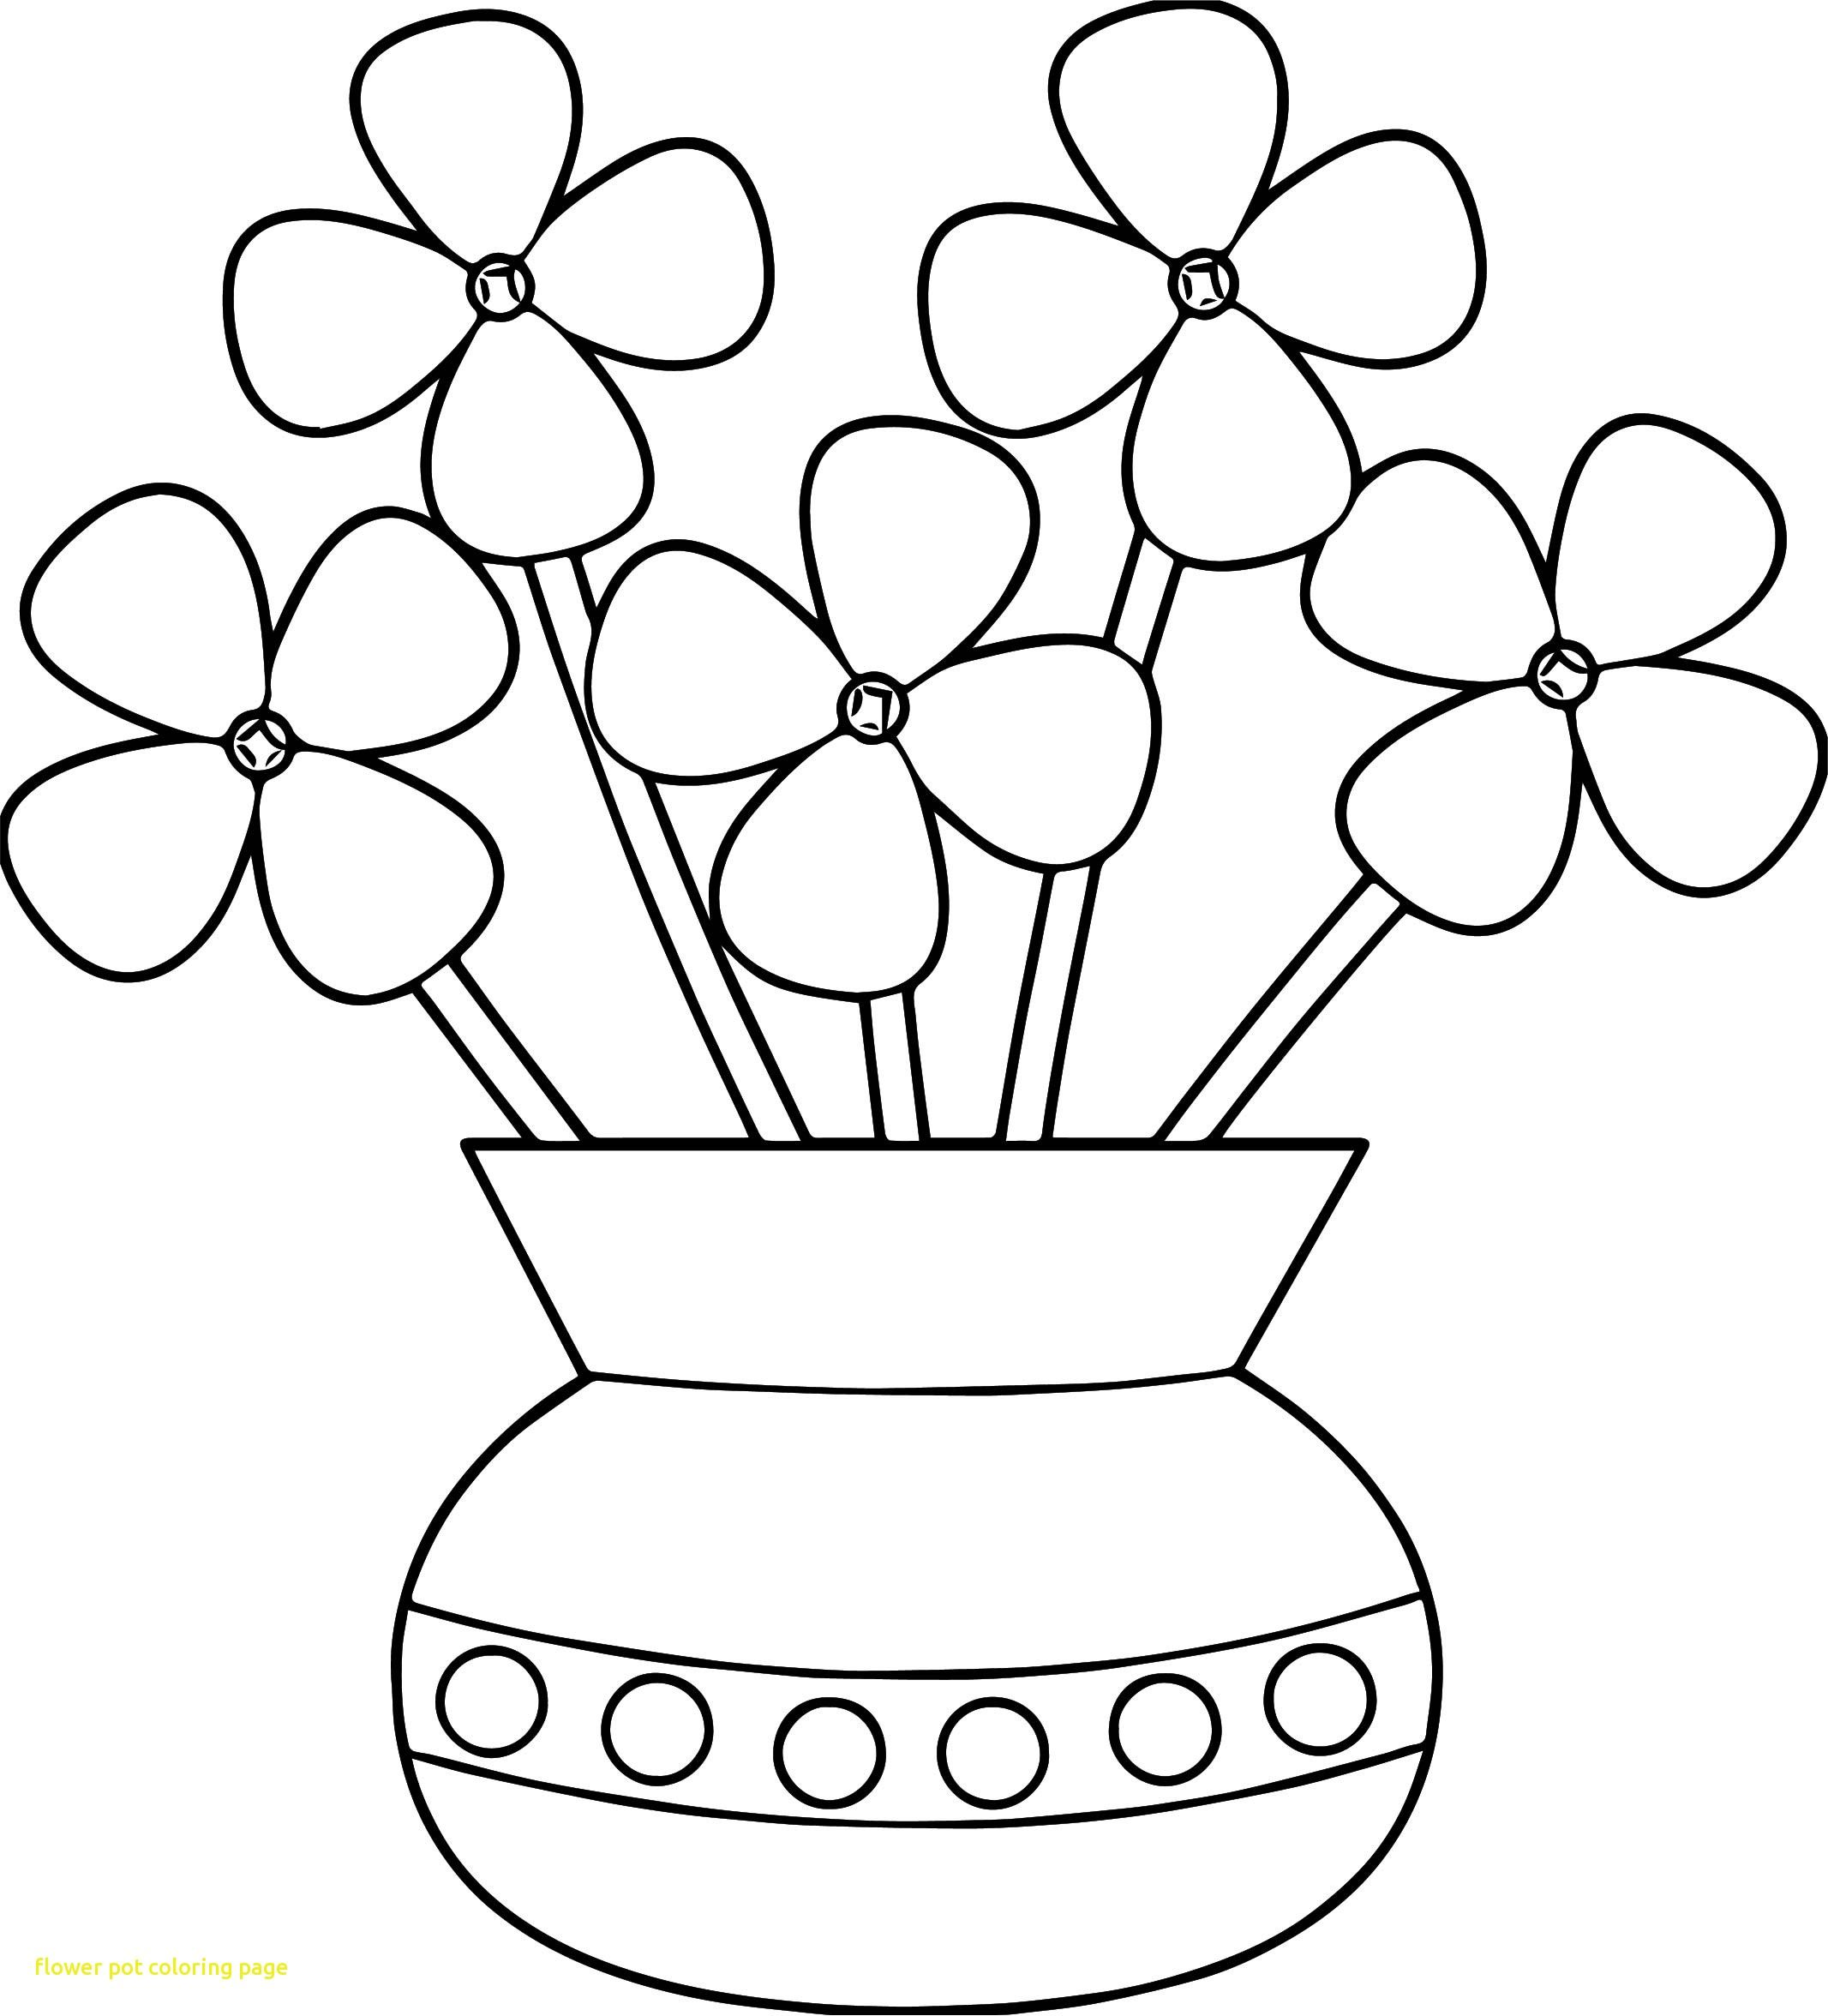 Flower Pot Coloring Page Flower Coloring Pages Printable Flower Coloring Pages Flower Coloring Sheets